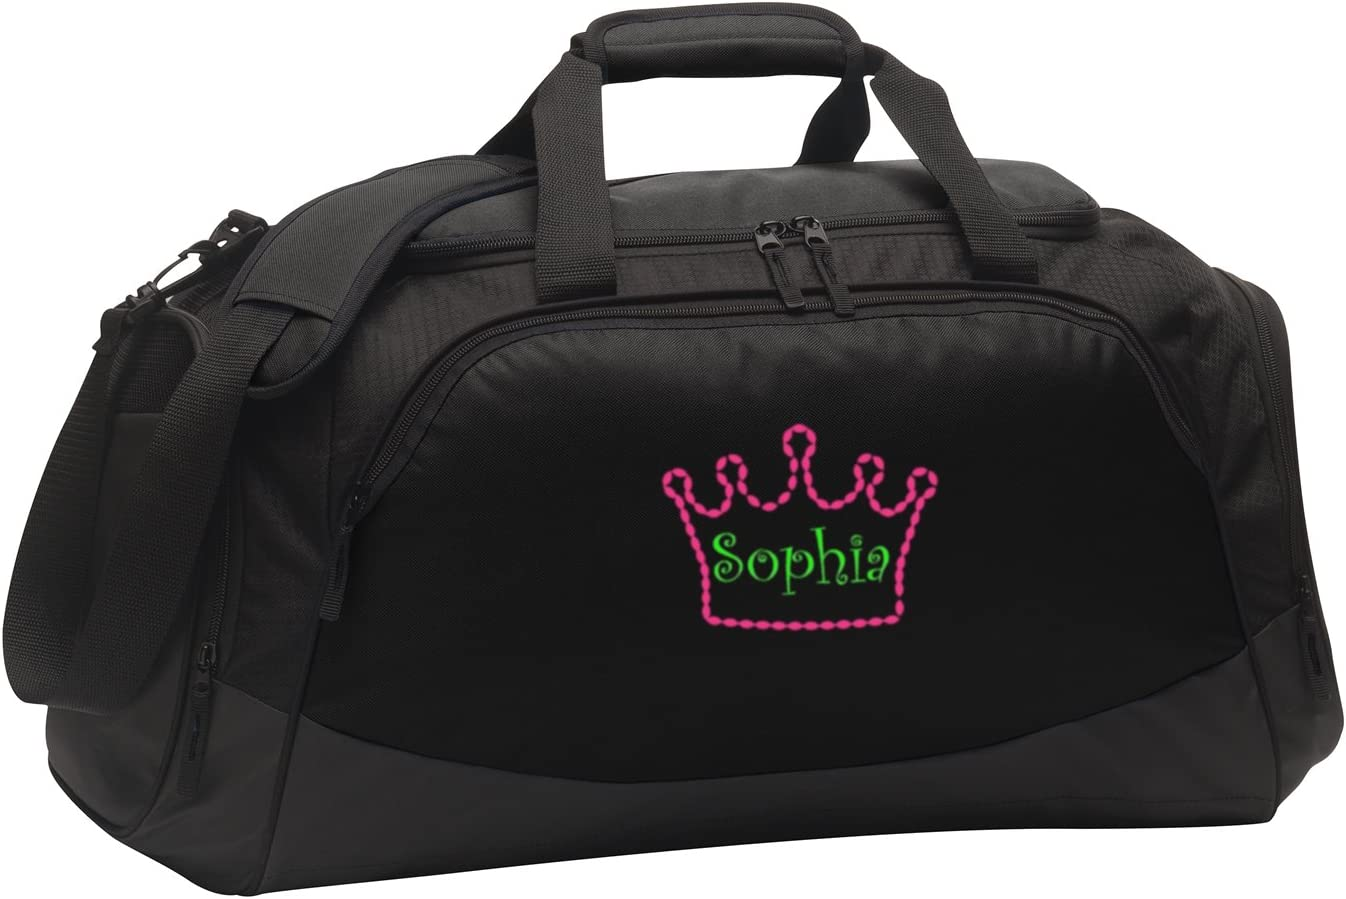 Personalized Crown Gym Bag all about me company Medium Active Duffel Bag Black//Black